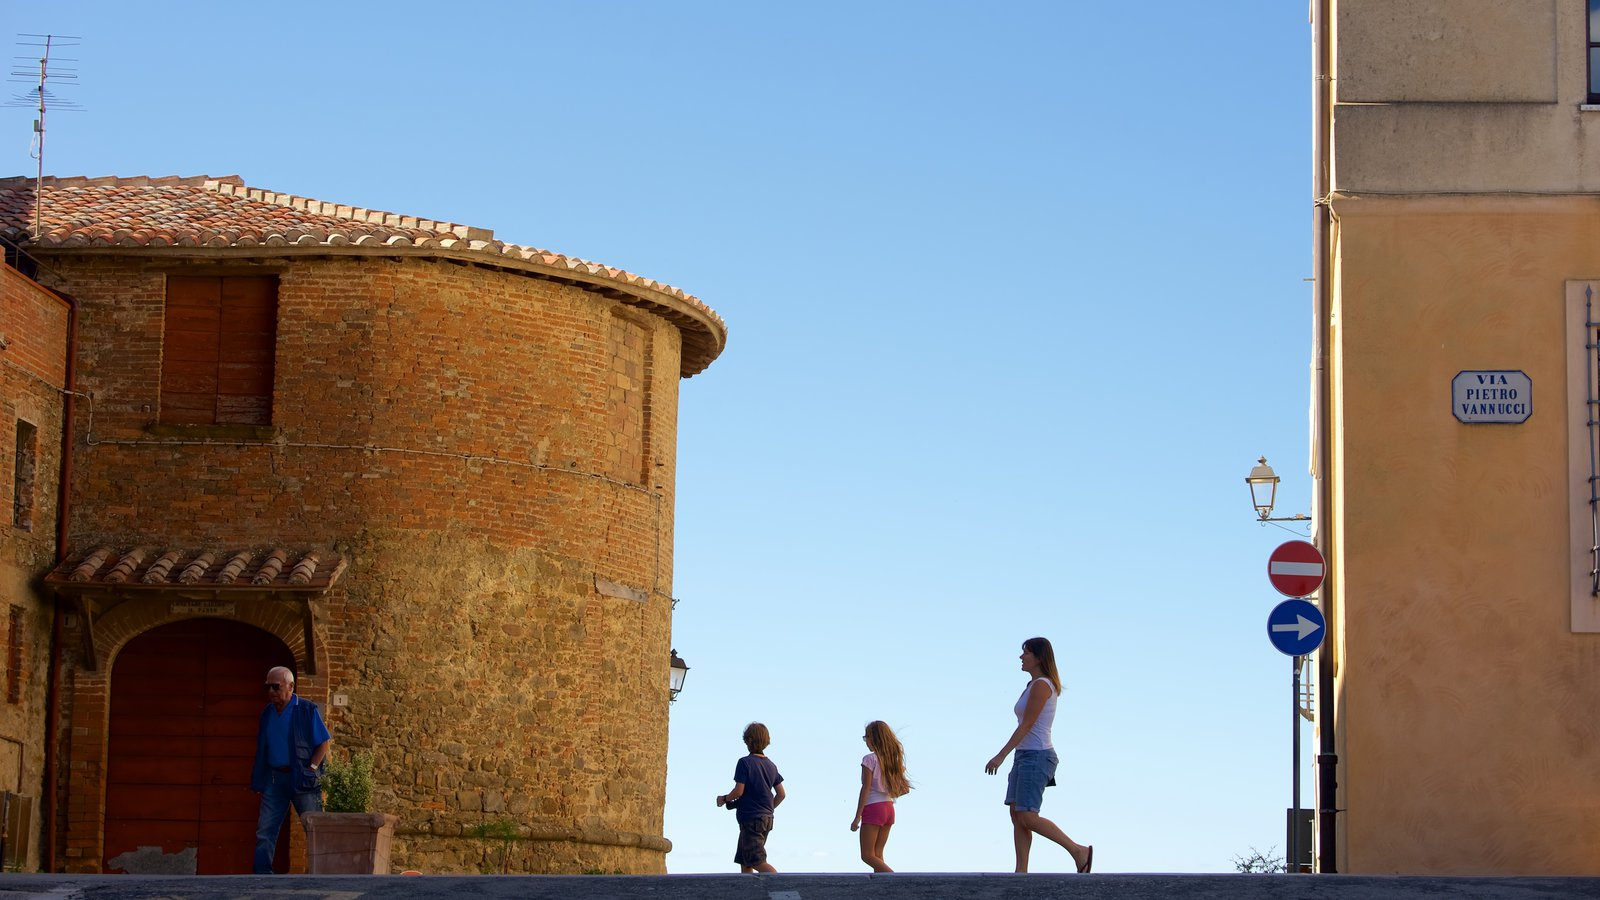 Panicale showing heritage architecture as well as a family